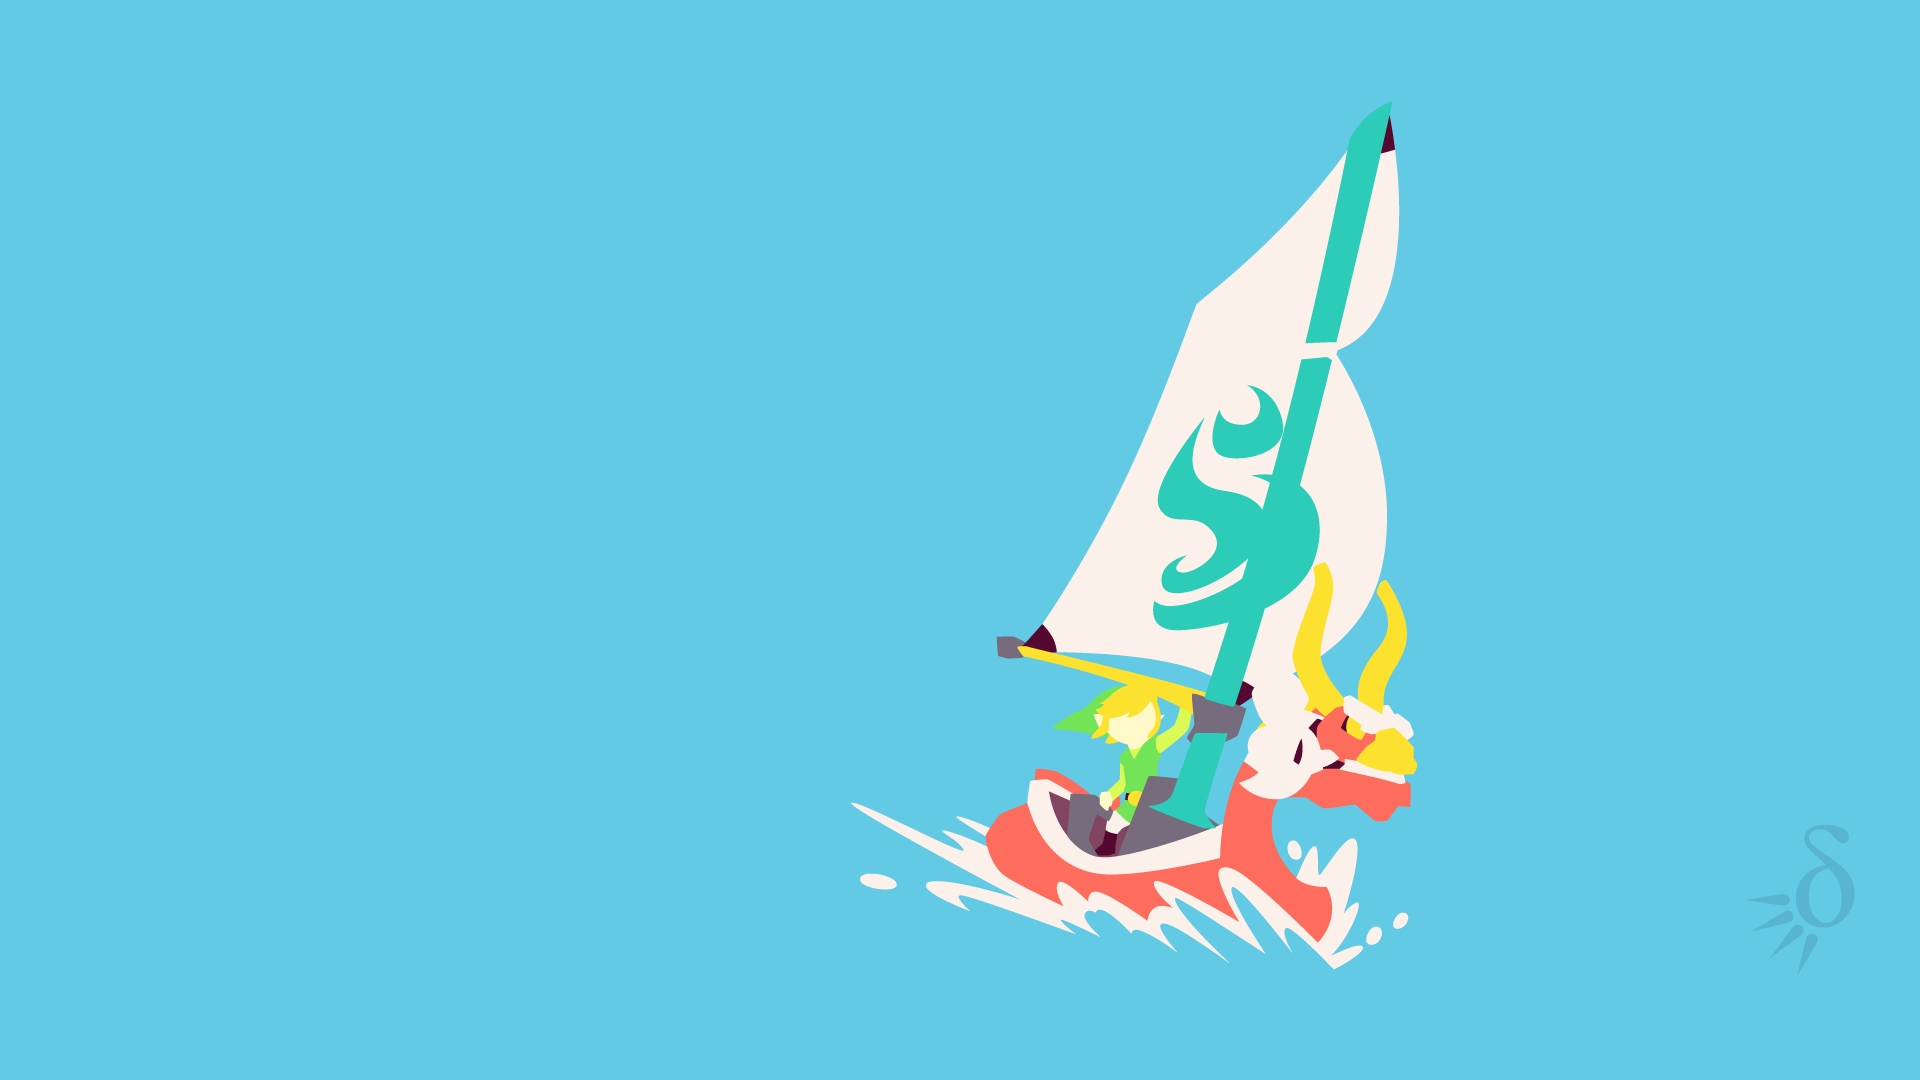 wind waker desktop background | background check all